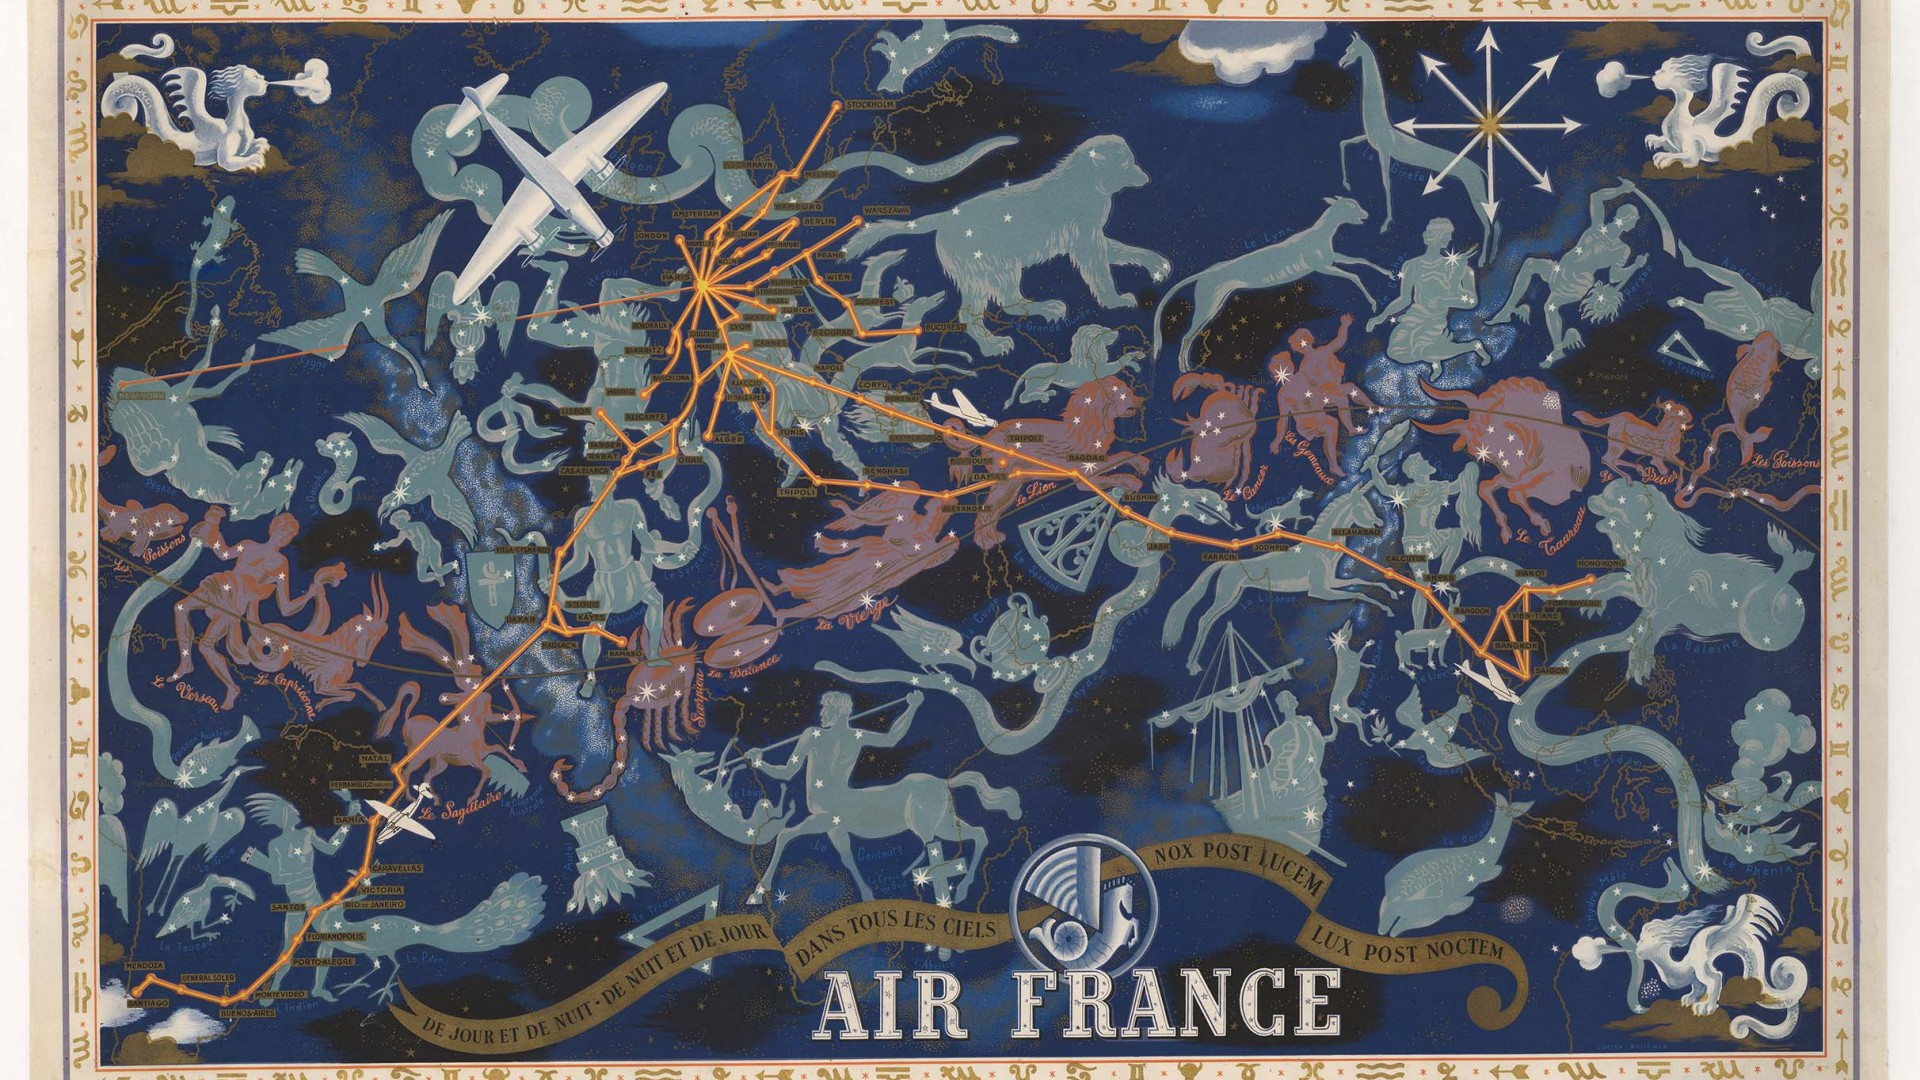 Lucian Boucher – Air France